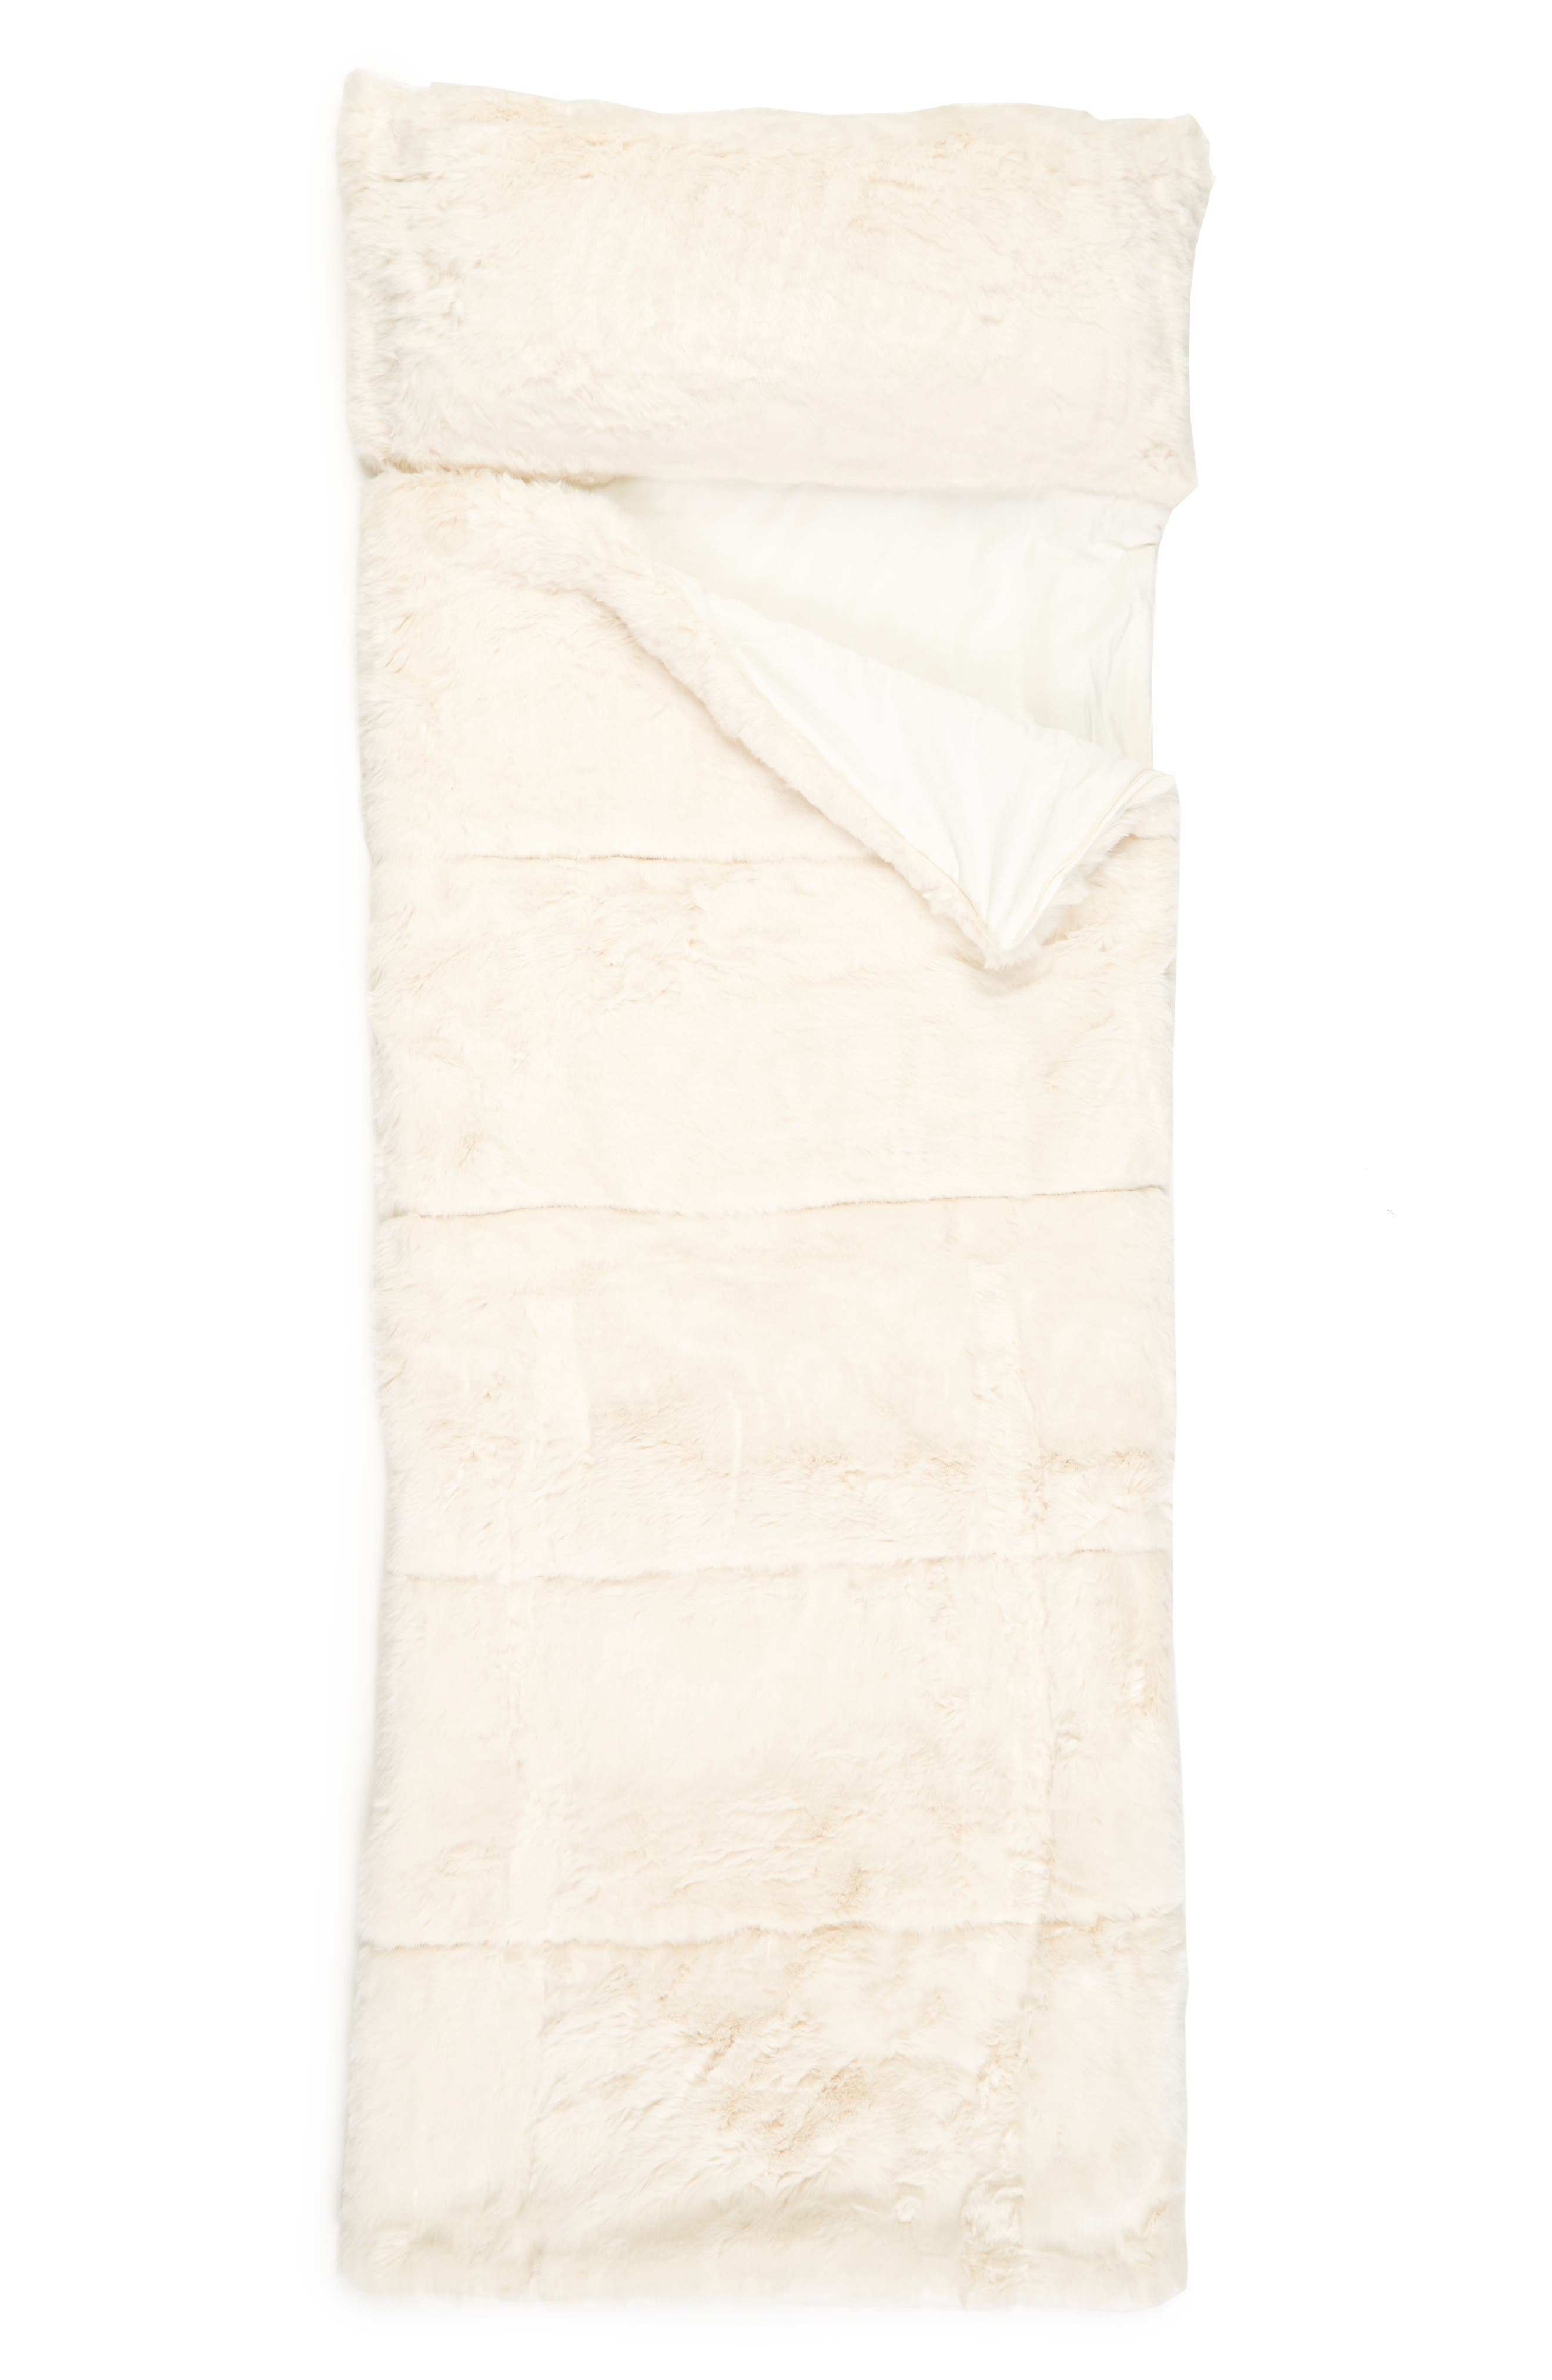 NORDSTROM AT HOME, Cuddle Up Faux Fur Sleeping Bag, Main thumbnail 1, color, IVORY